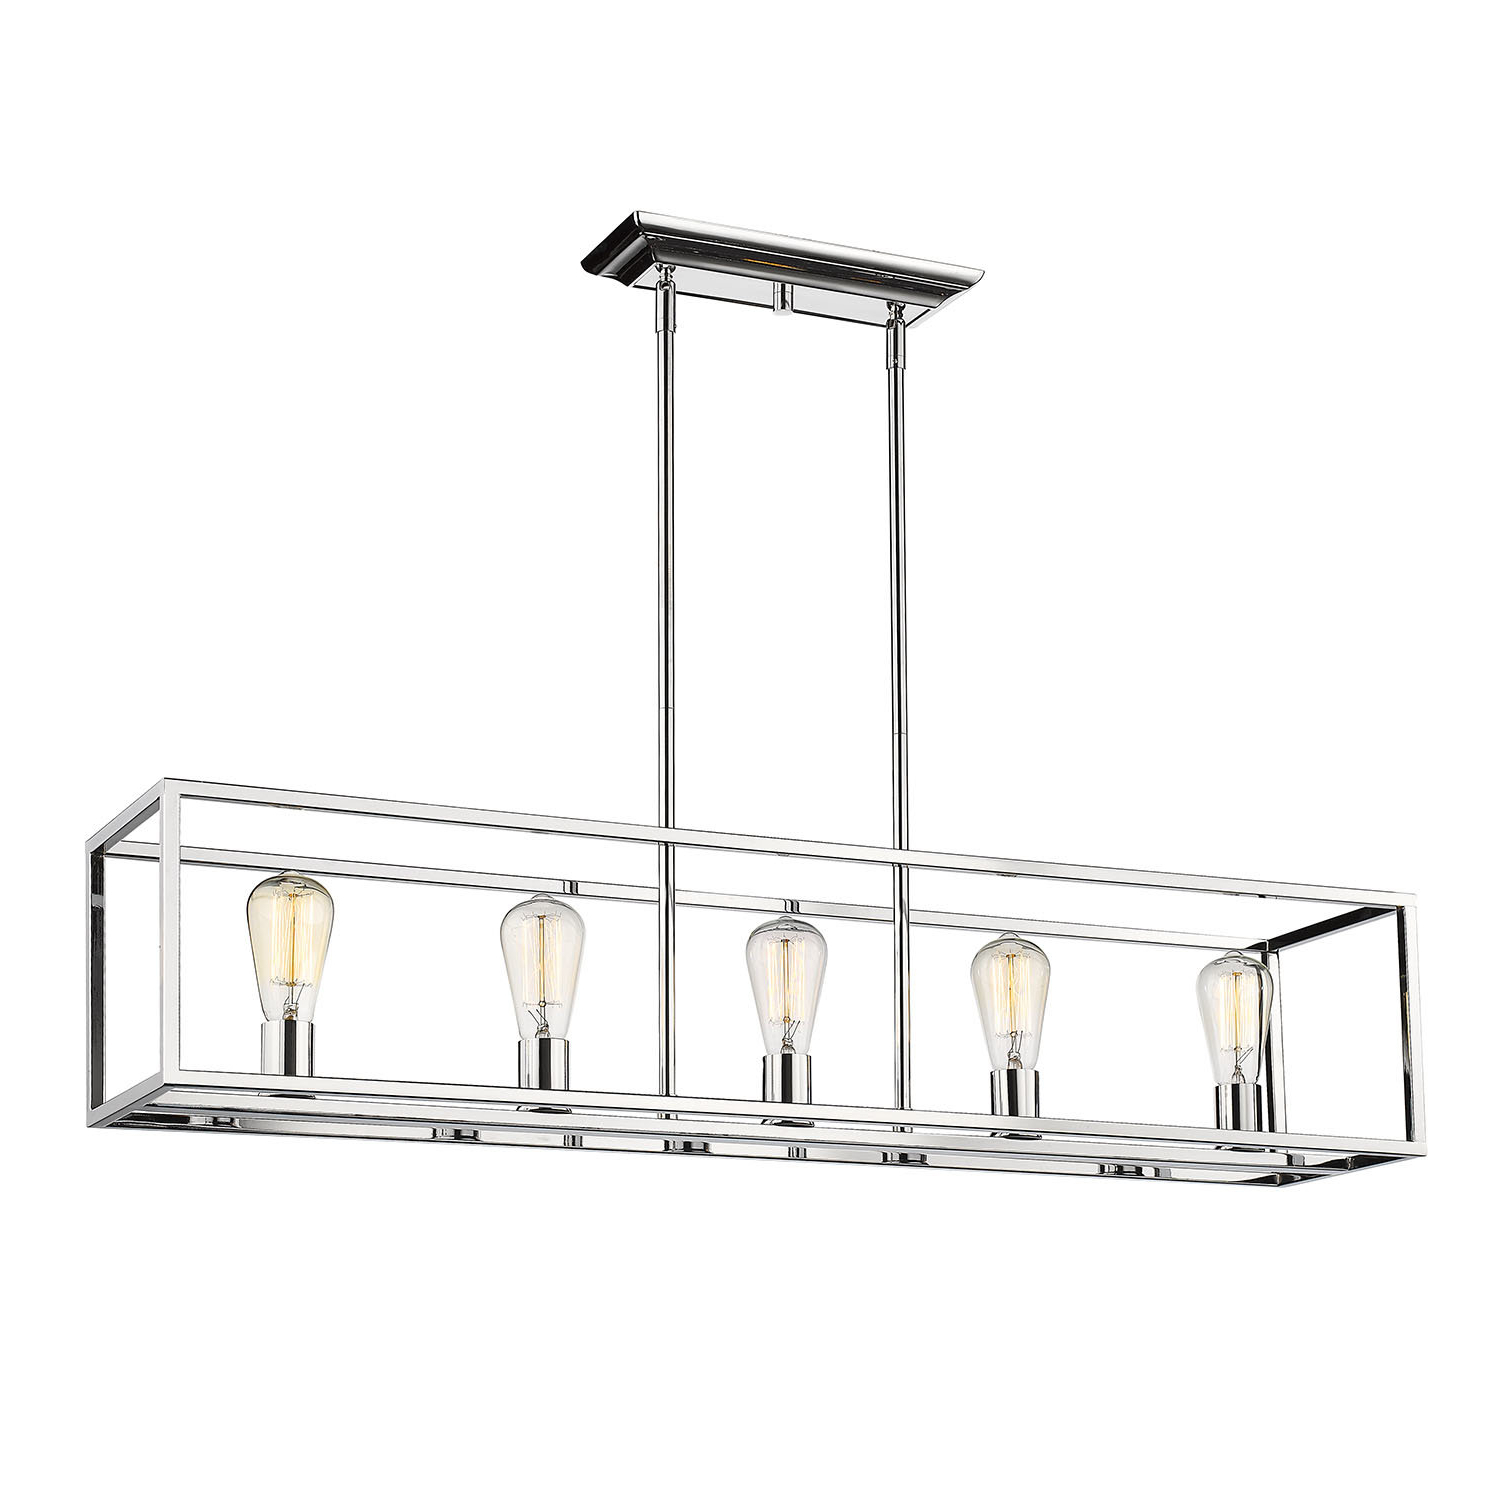 Mizer 5 Light Kitchen Island Linear Pendant Regarding Well Known Bouvet 5 Light Kitchen Island Linear Pendants (View 10 of 20)